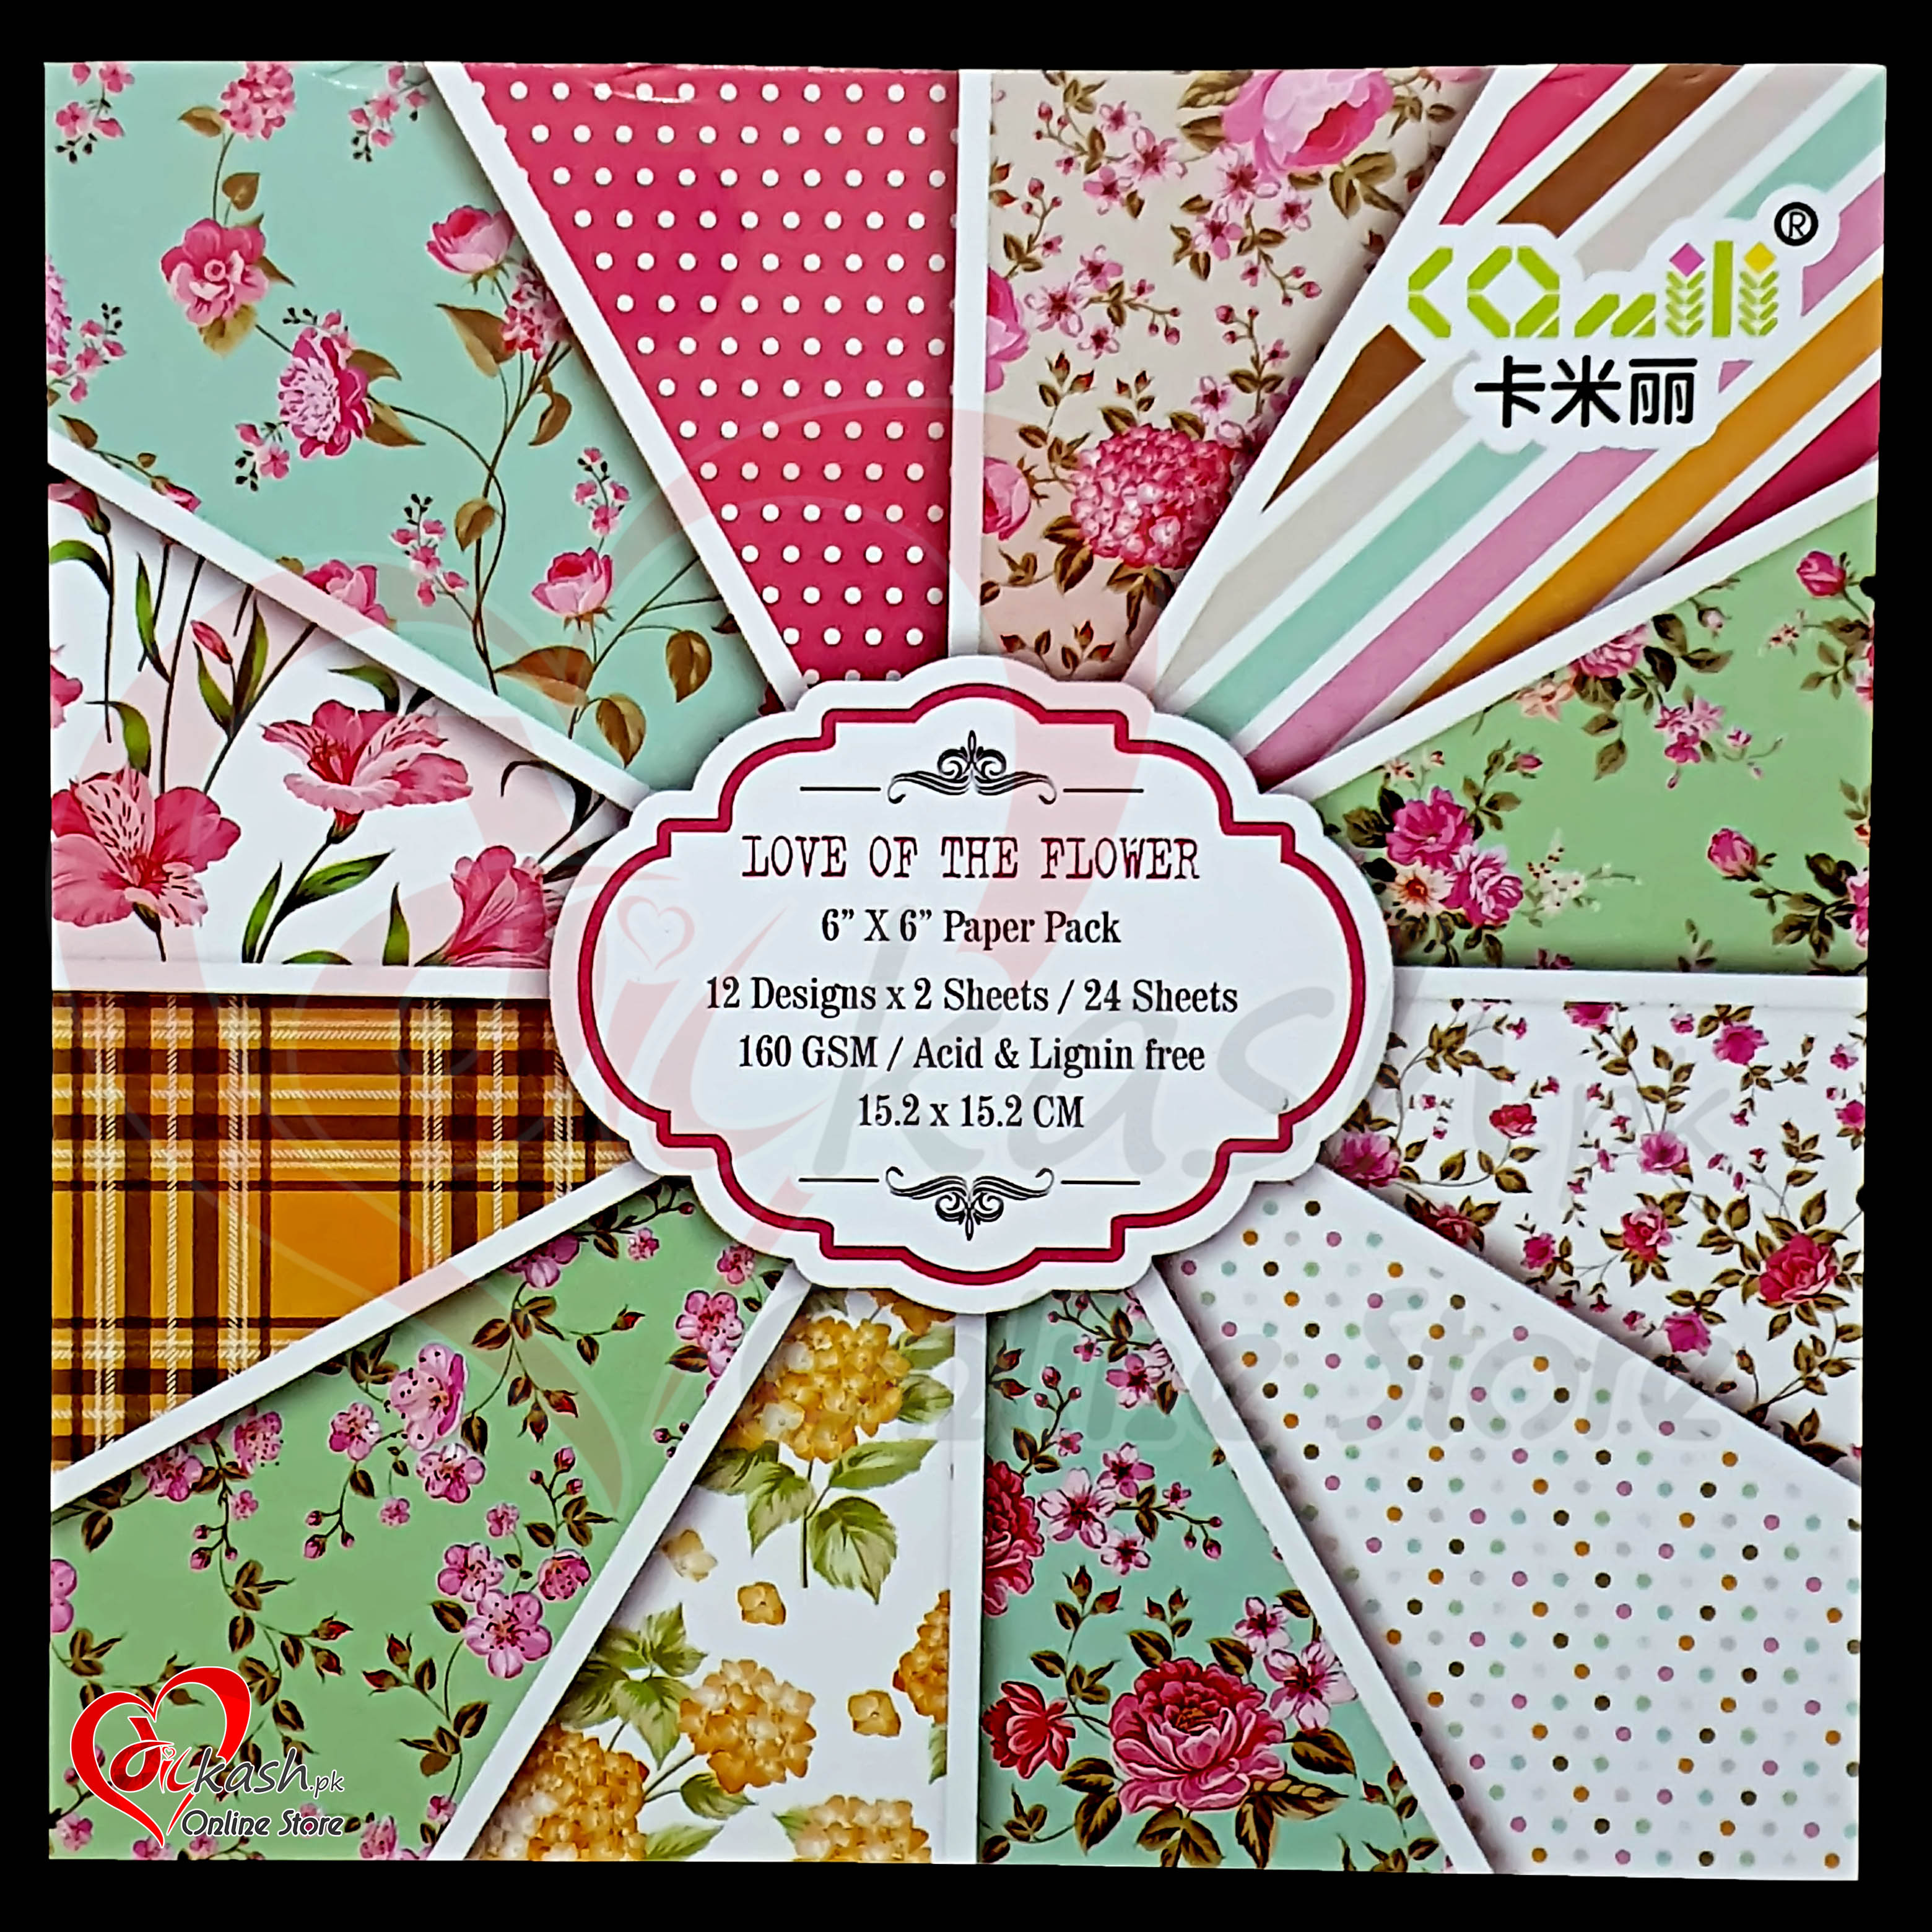 Scrapbook Paper Craft Pattern 6x6 Inches - Pattern Paper